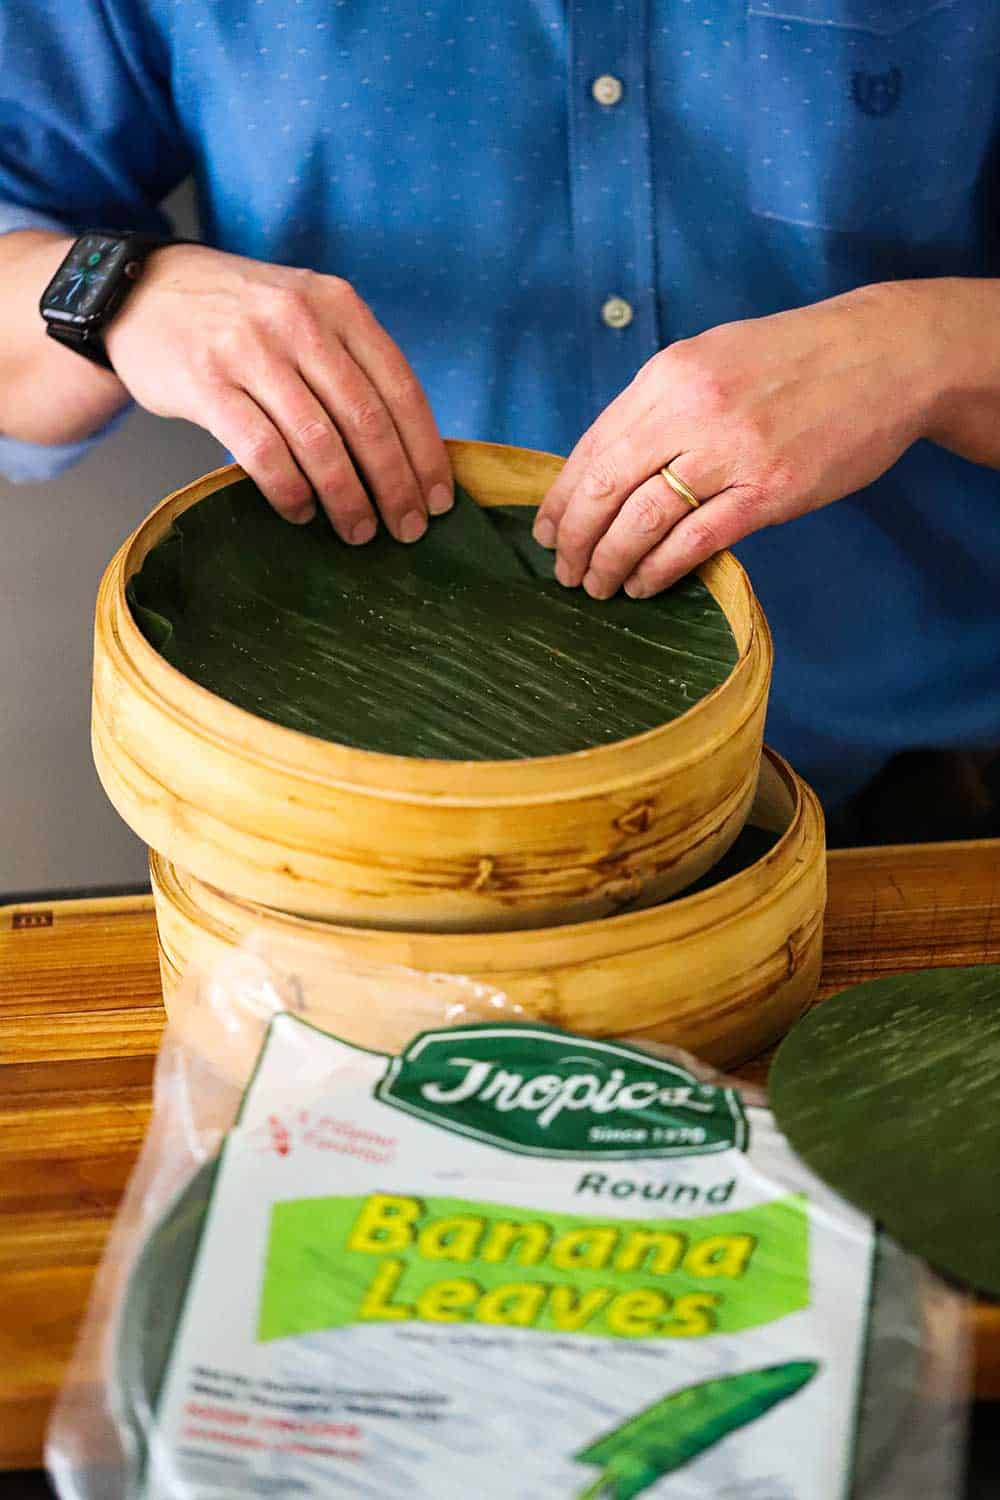 A person placing a circular piece of banana leaves into a double-stacked bamboo steamer with the package of banana leaves in the foreground.